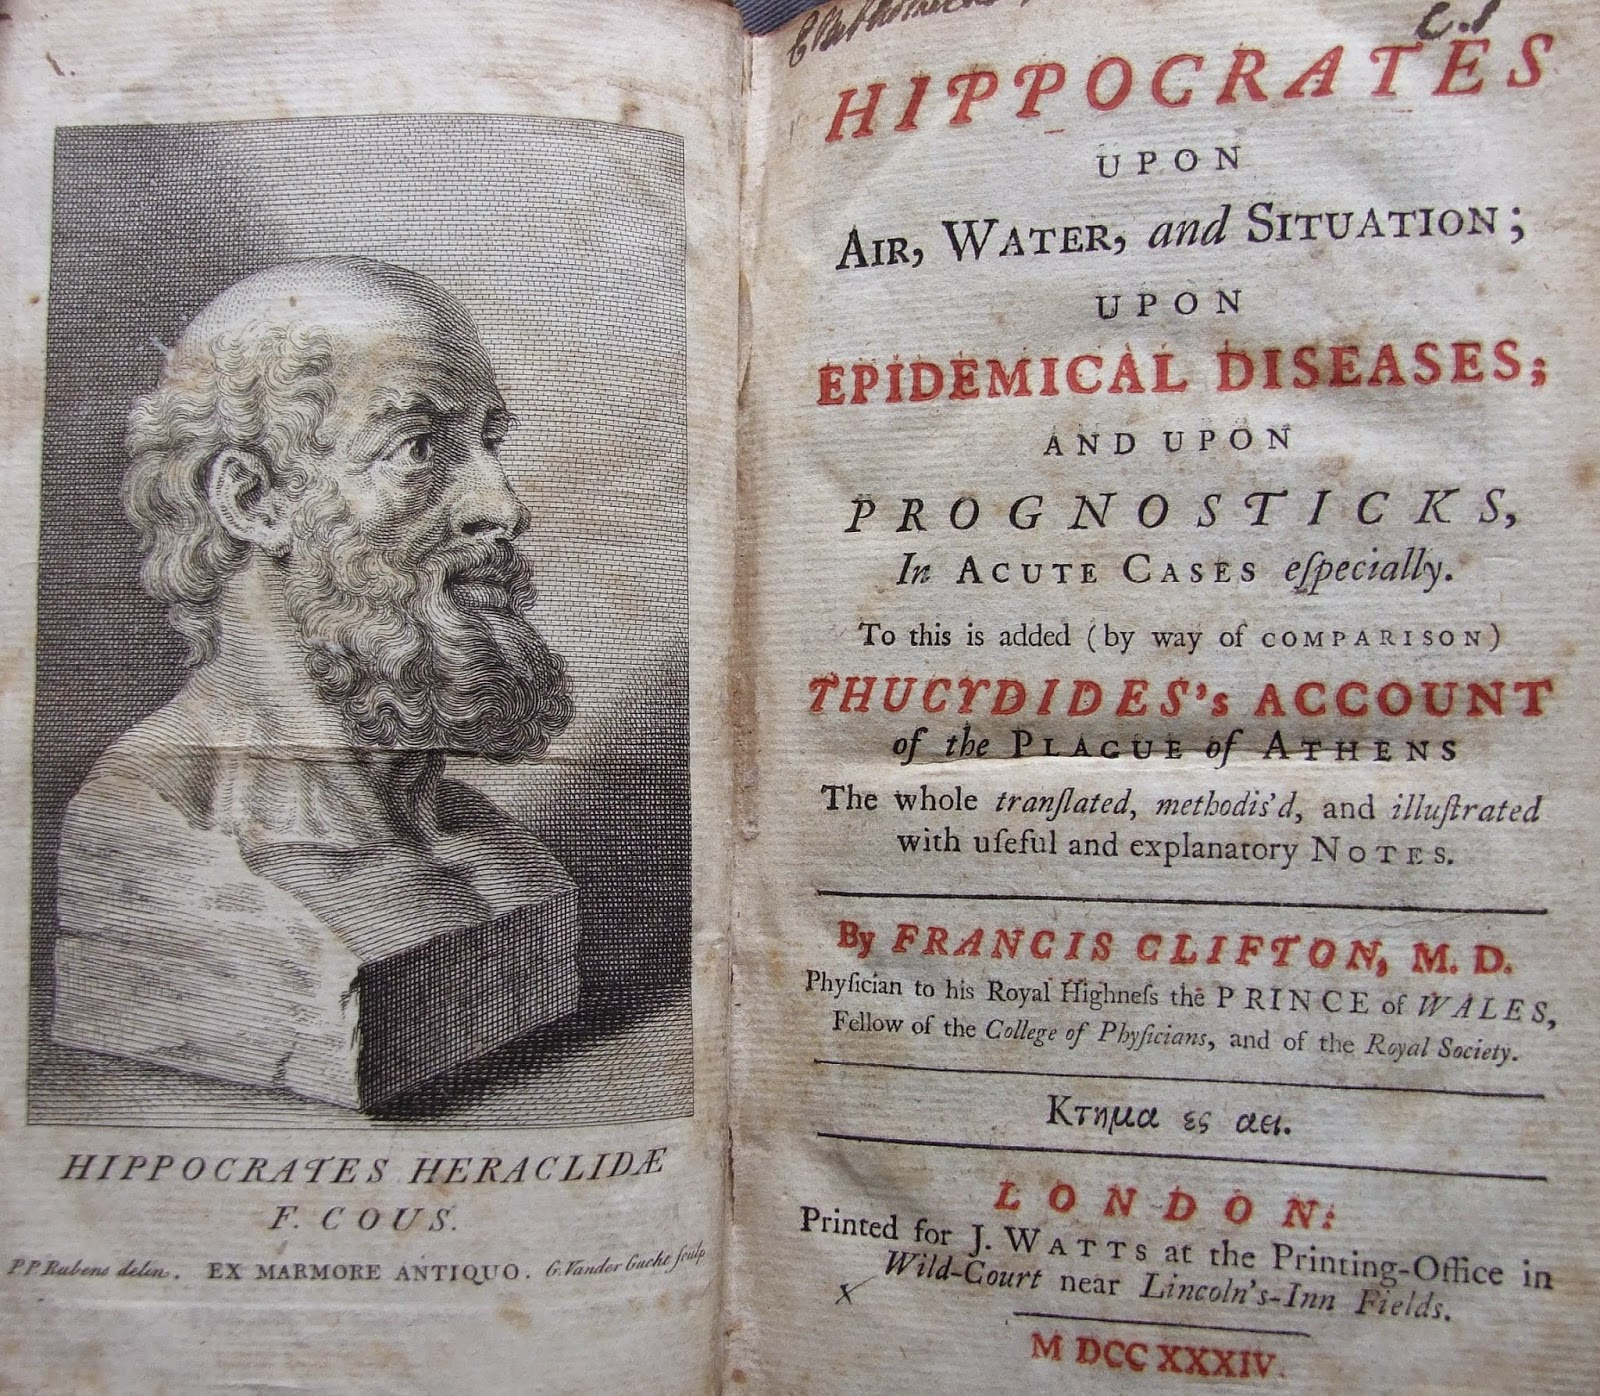 hippocrates the father of medicine Hippocrates, the father of medicine, may have lived from c 460-377 bc, a period covering the age of pericles and the persian war like other details about.